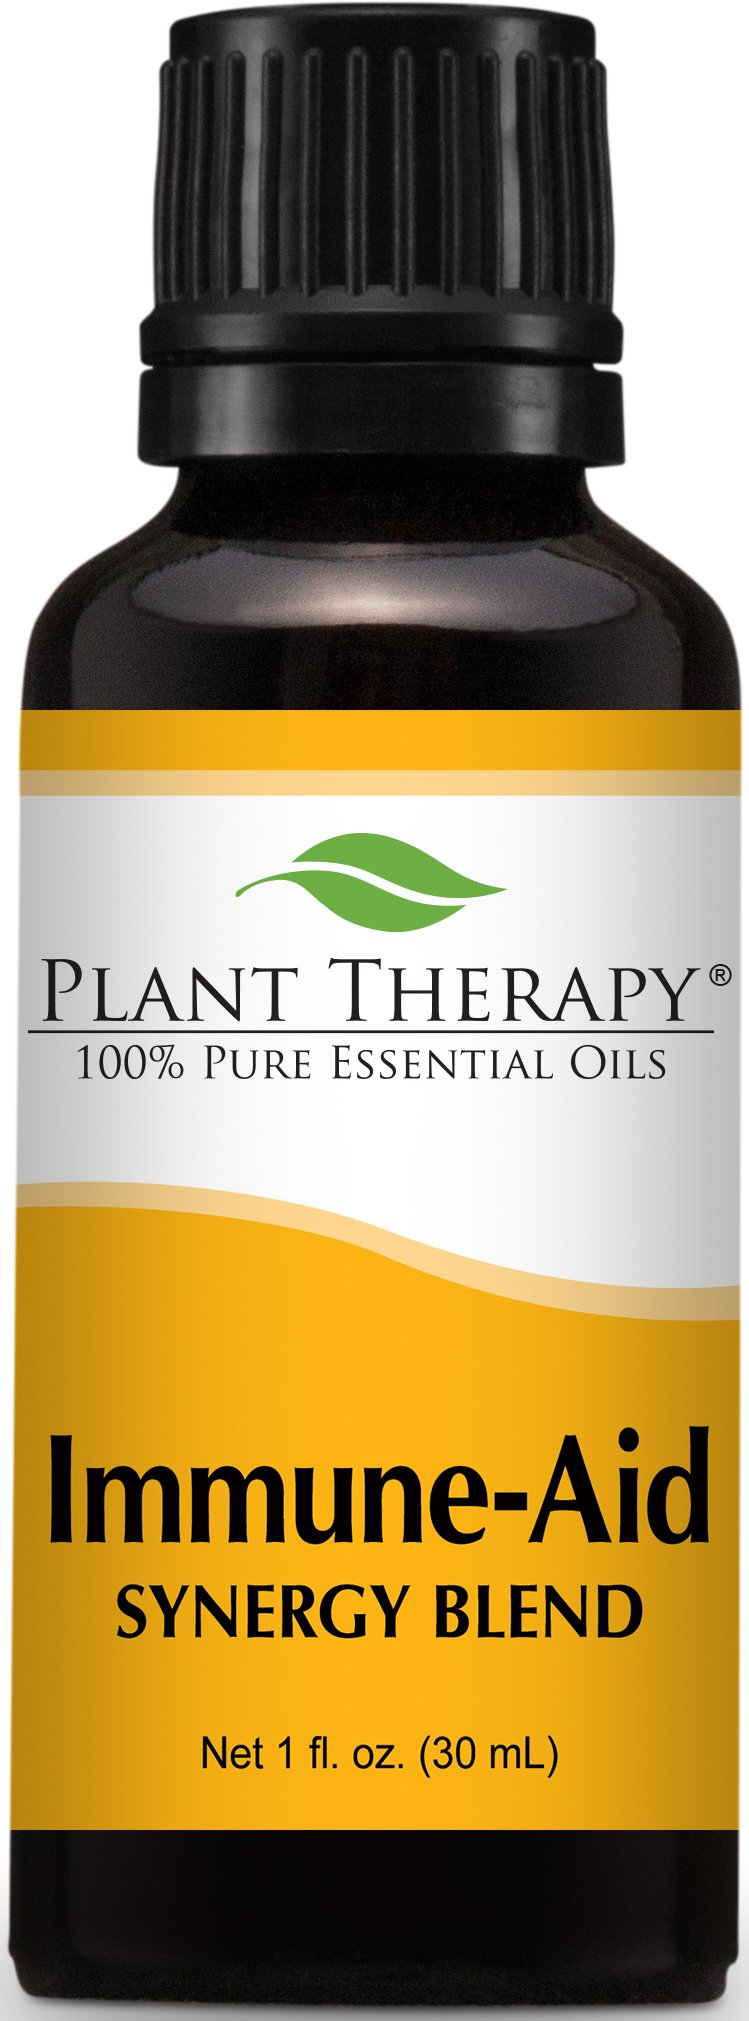 Plant Therapy Immune-Aid Synergy Essential Oil Blend. 100% Pure, Undiluted, Therapeutic Grade. Blend of: Frankincense, Tea Tree, Rosemary, Lemon, Eucalyptus and Orange. 30 ml (1 oz).